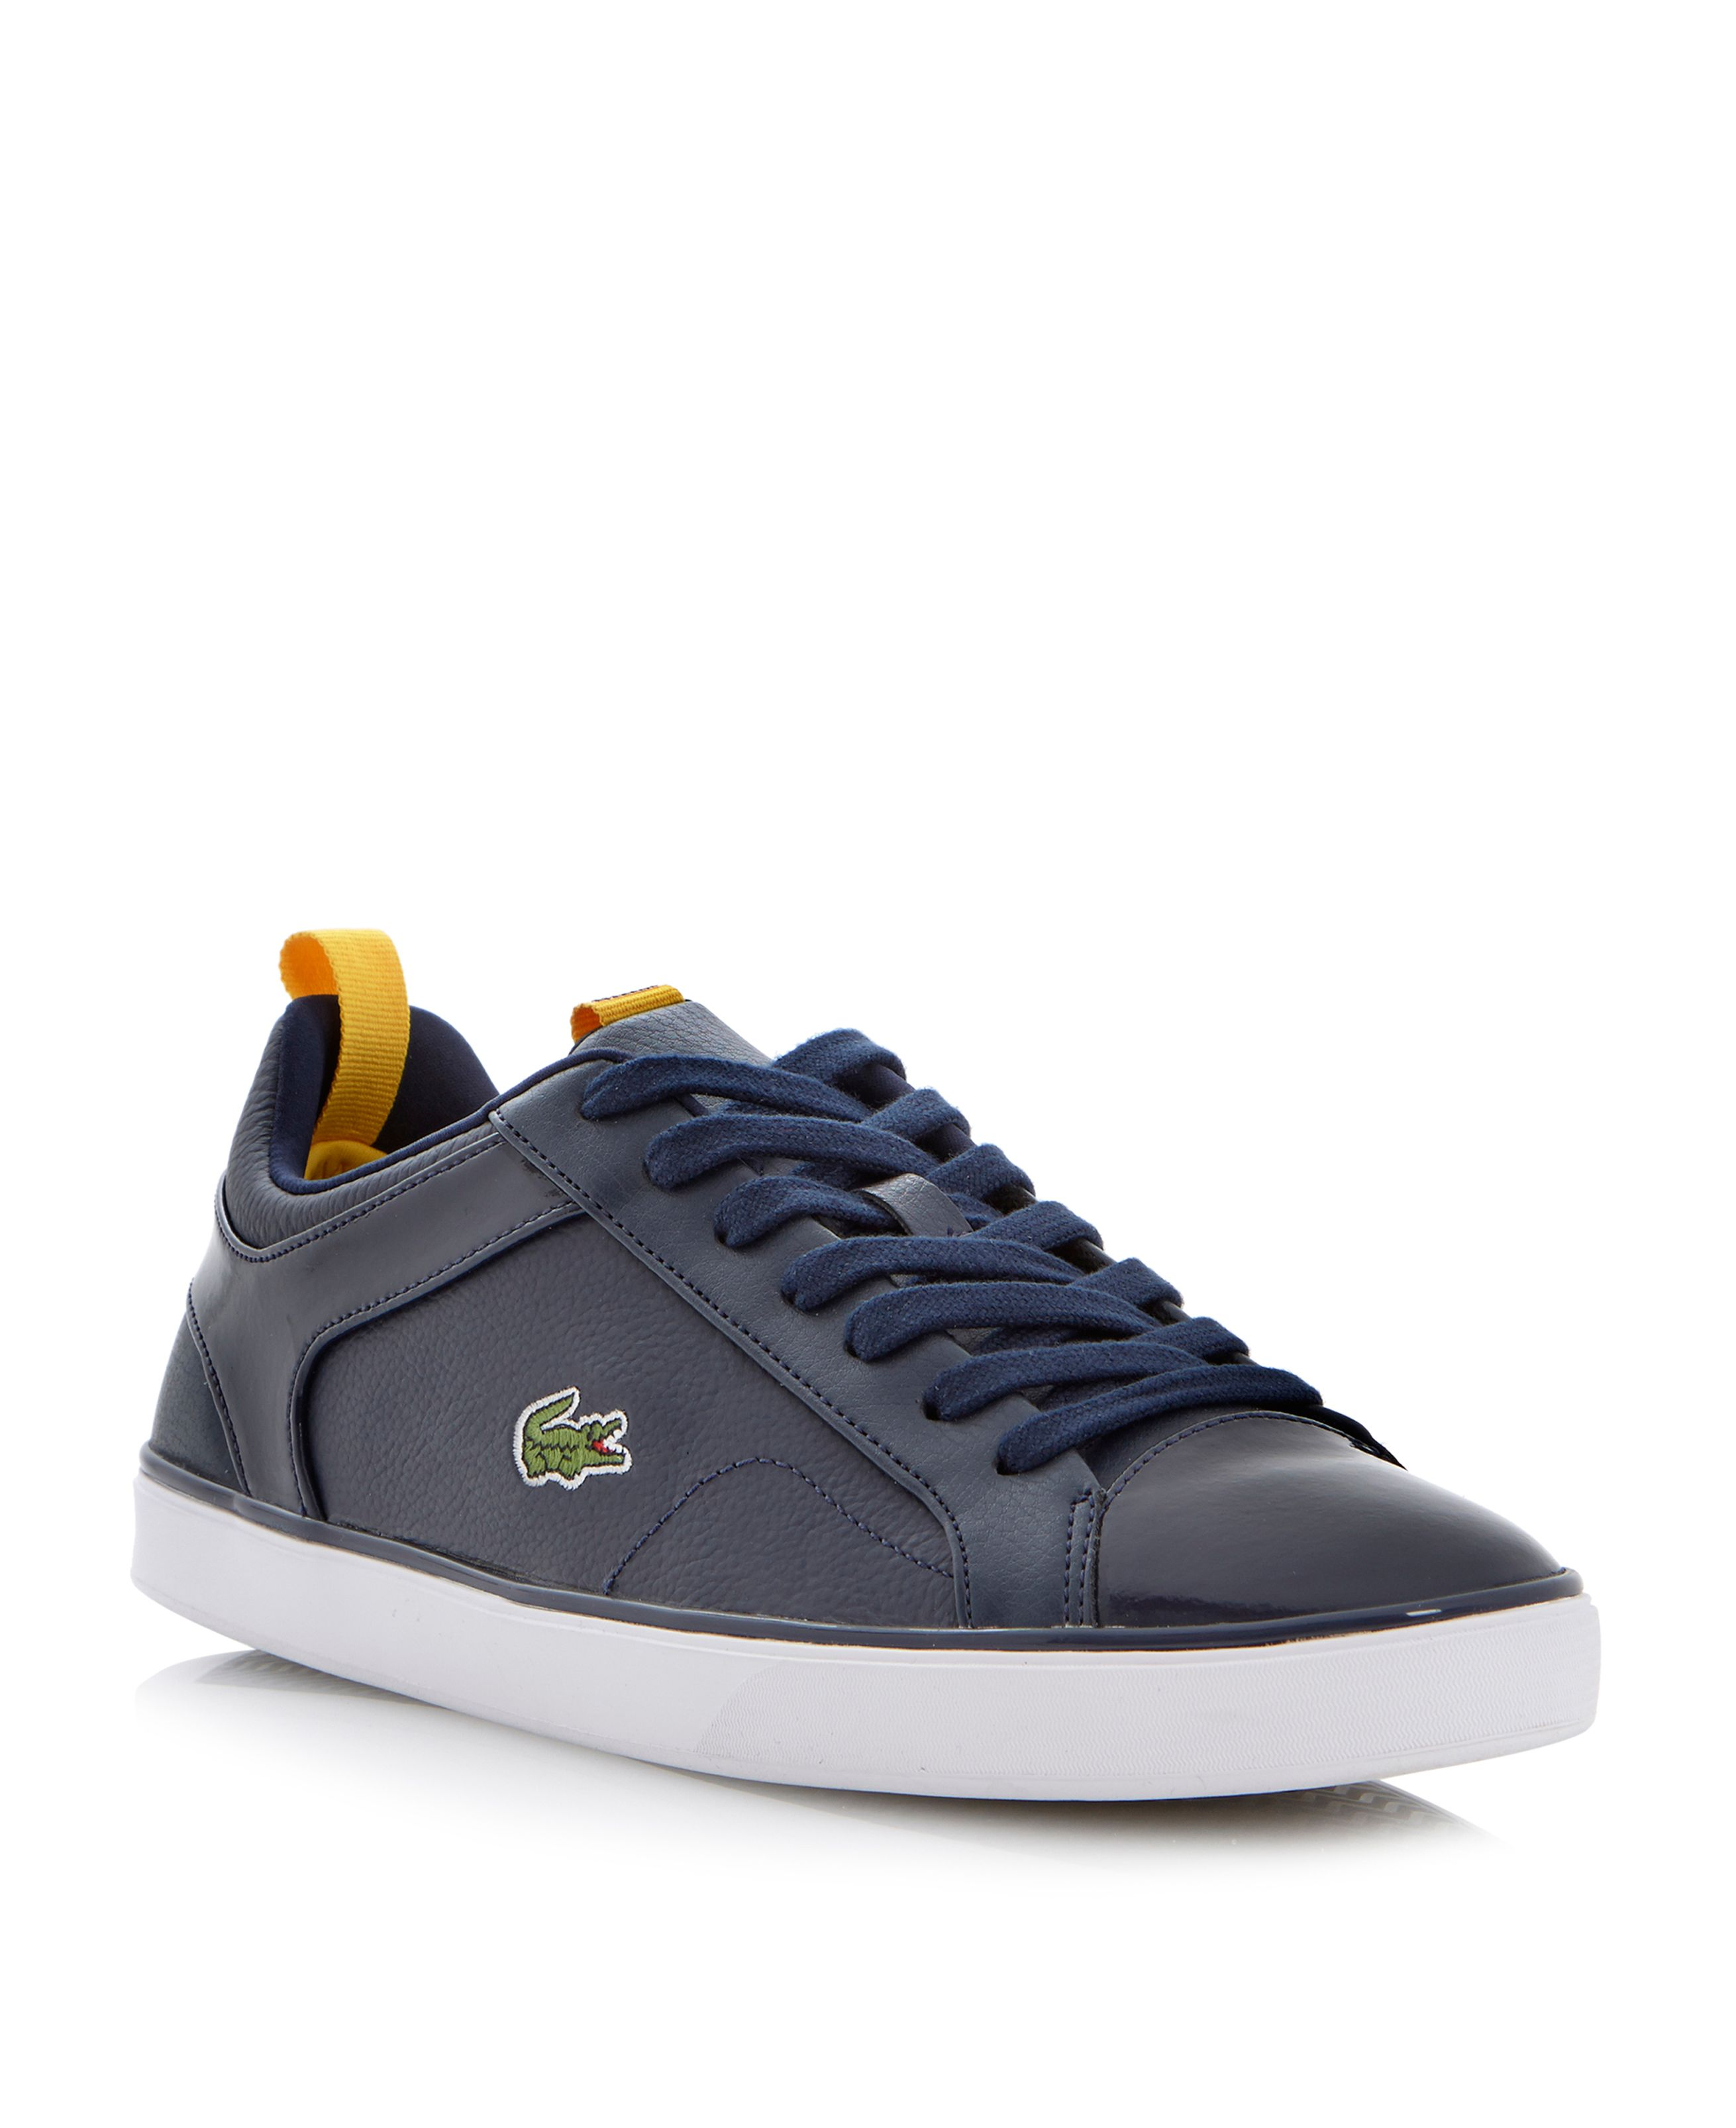 Ventron nal lace up logo trainers